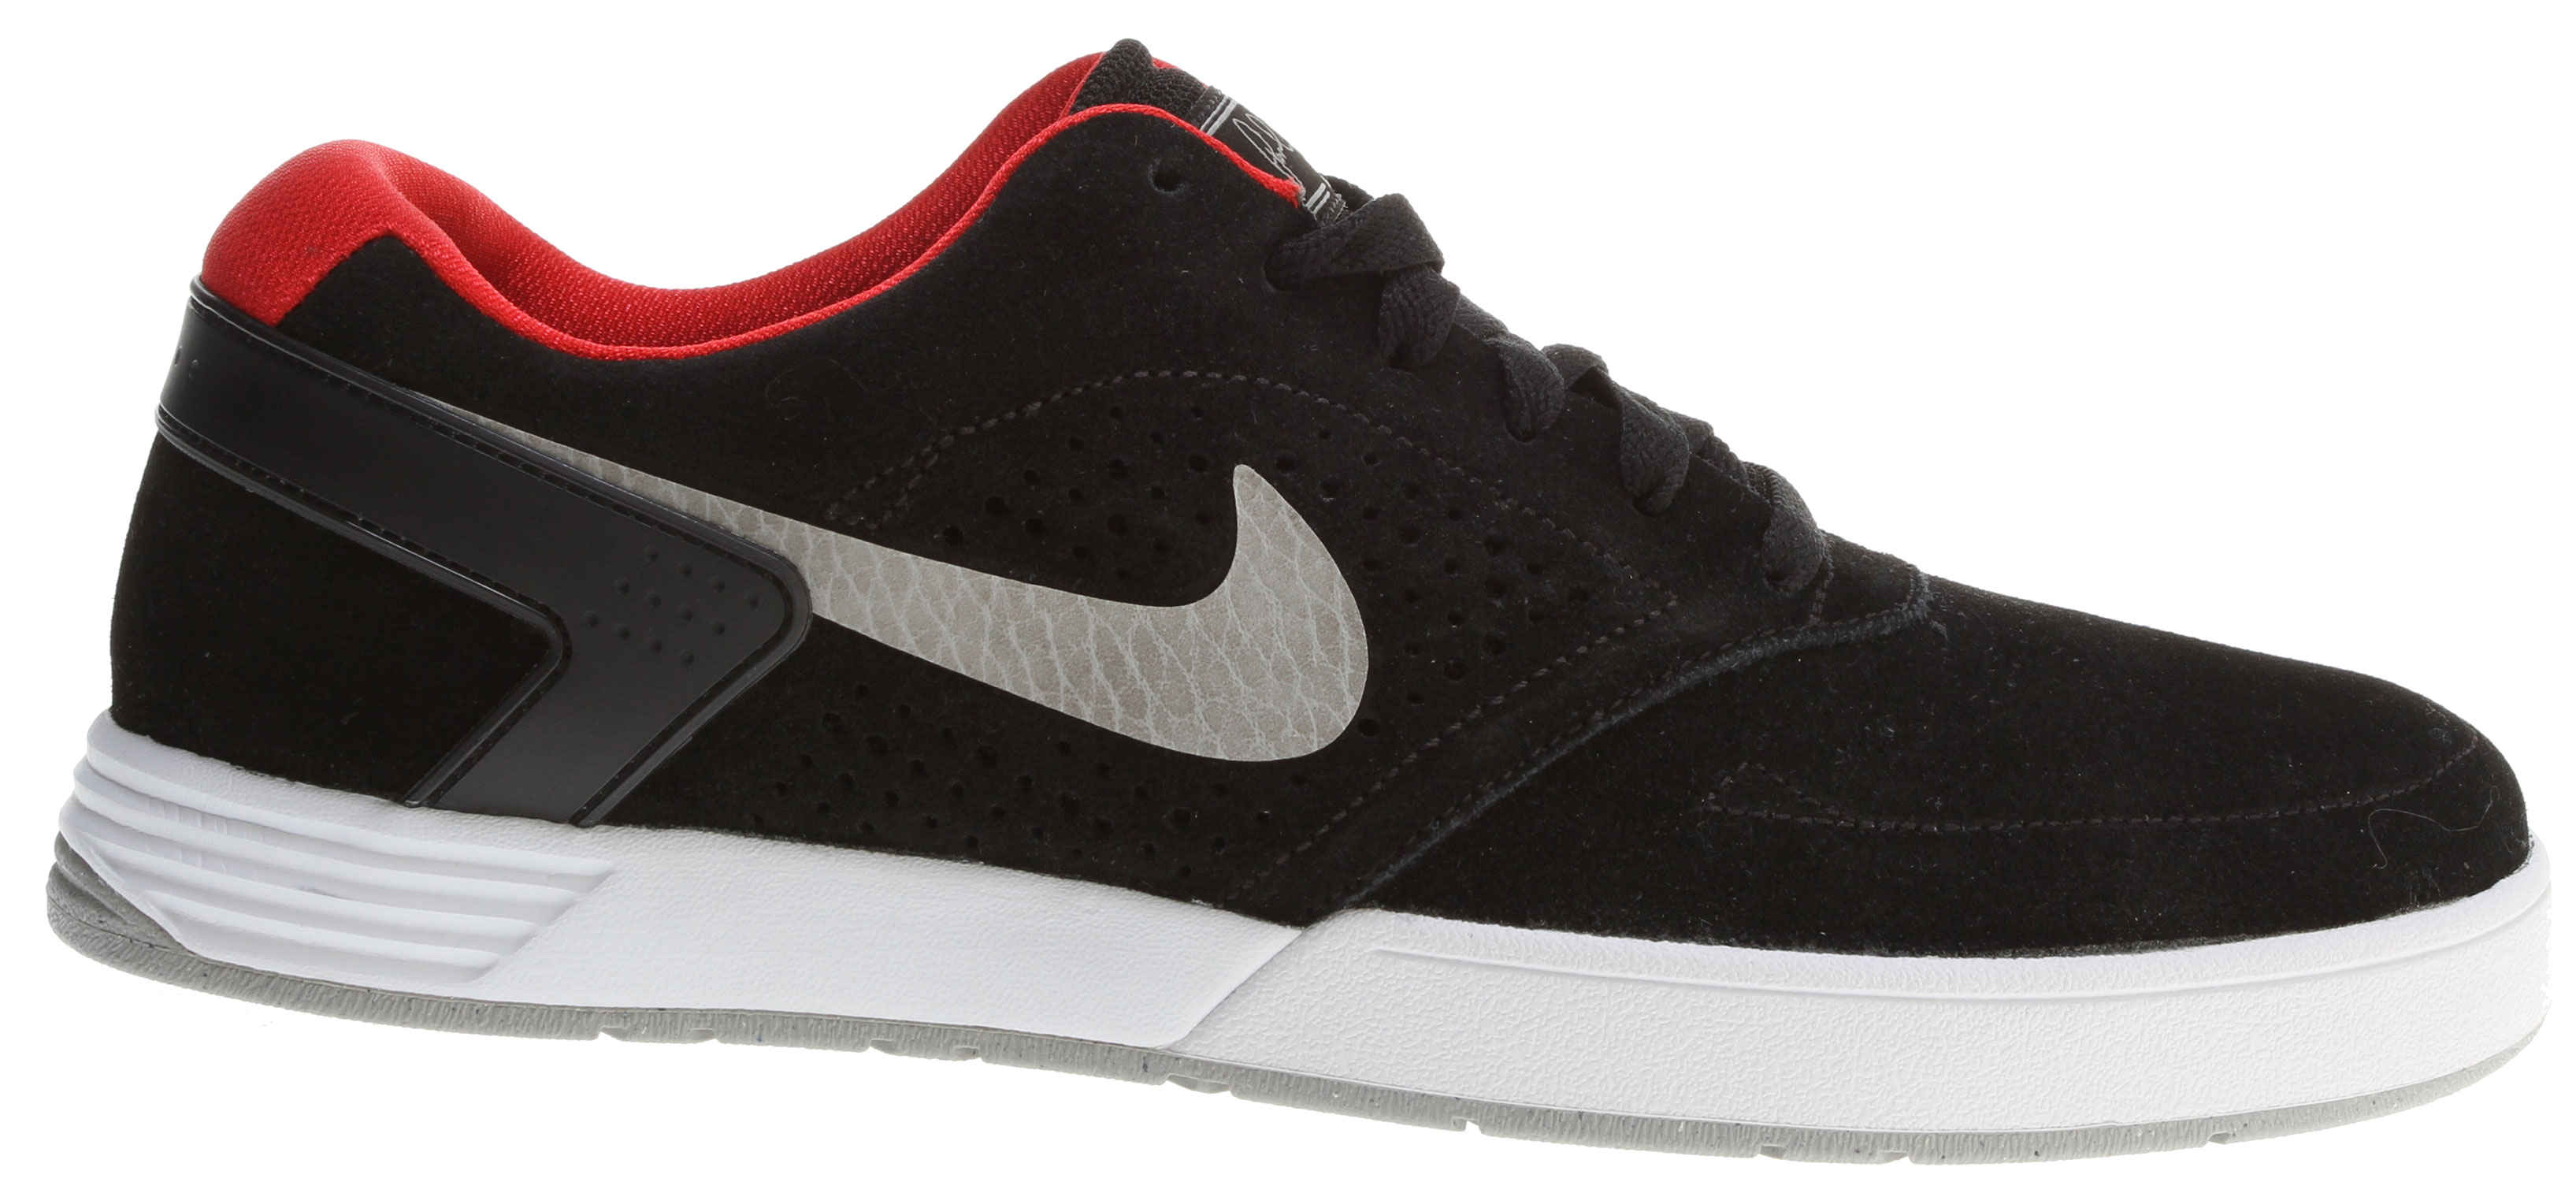 Skateboard Lightweight, breathable protection, merged with Nike innovation to create the perfect low-top skate silhouette.Key Features of the Nike Paul Rodriguez 6 Shoes: UPPER: Suede/leather with increased layers Designed for breathable protection OUTSOLE: Decreased usage of rubber, combined with a razor herringbone tread pattern, provide flexibility and traction MIDSOLE: Lunarlon foam, encased in a Phylon midsole, provide the ultimate lightweight cushioning. - $62.95